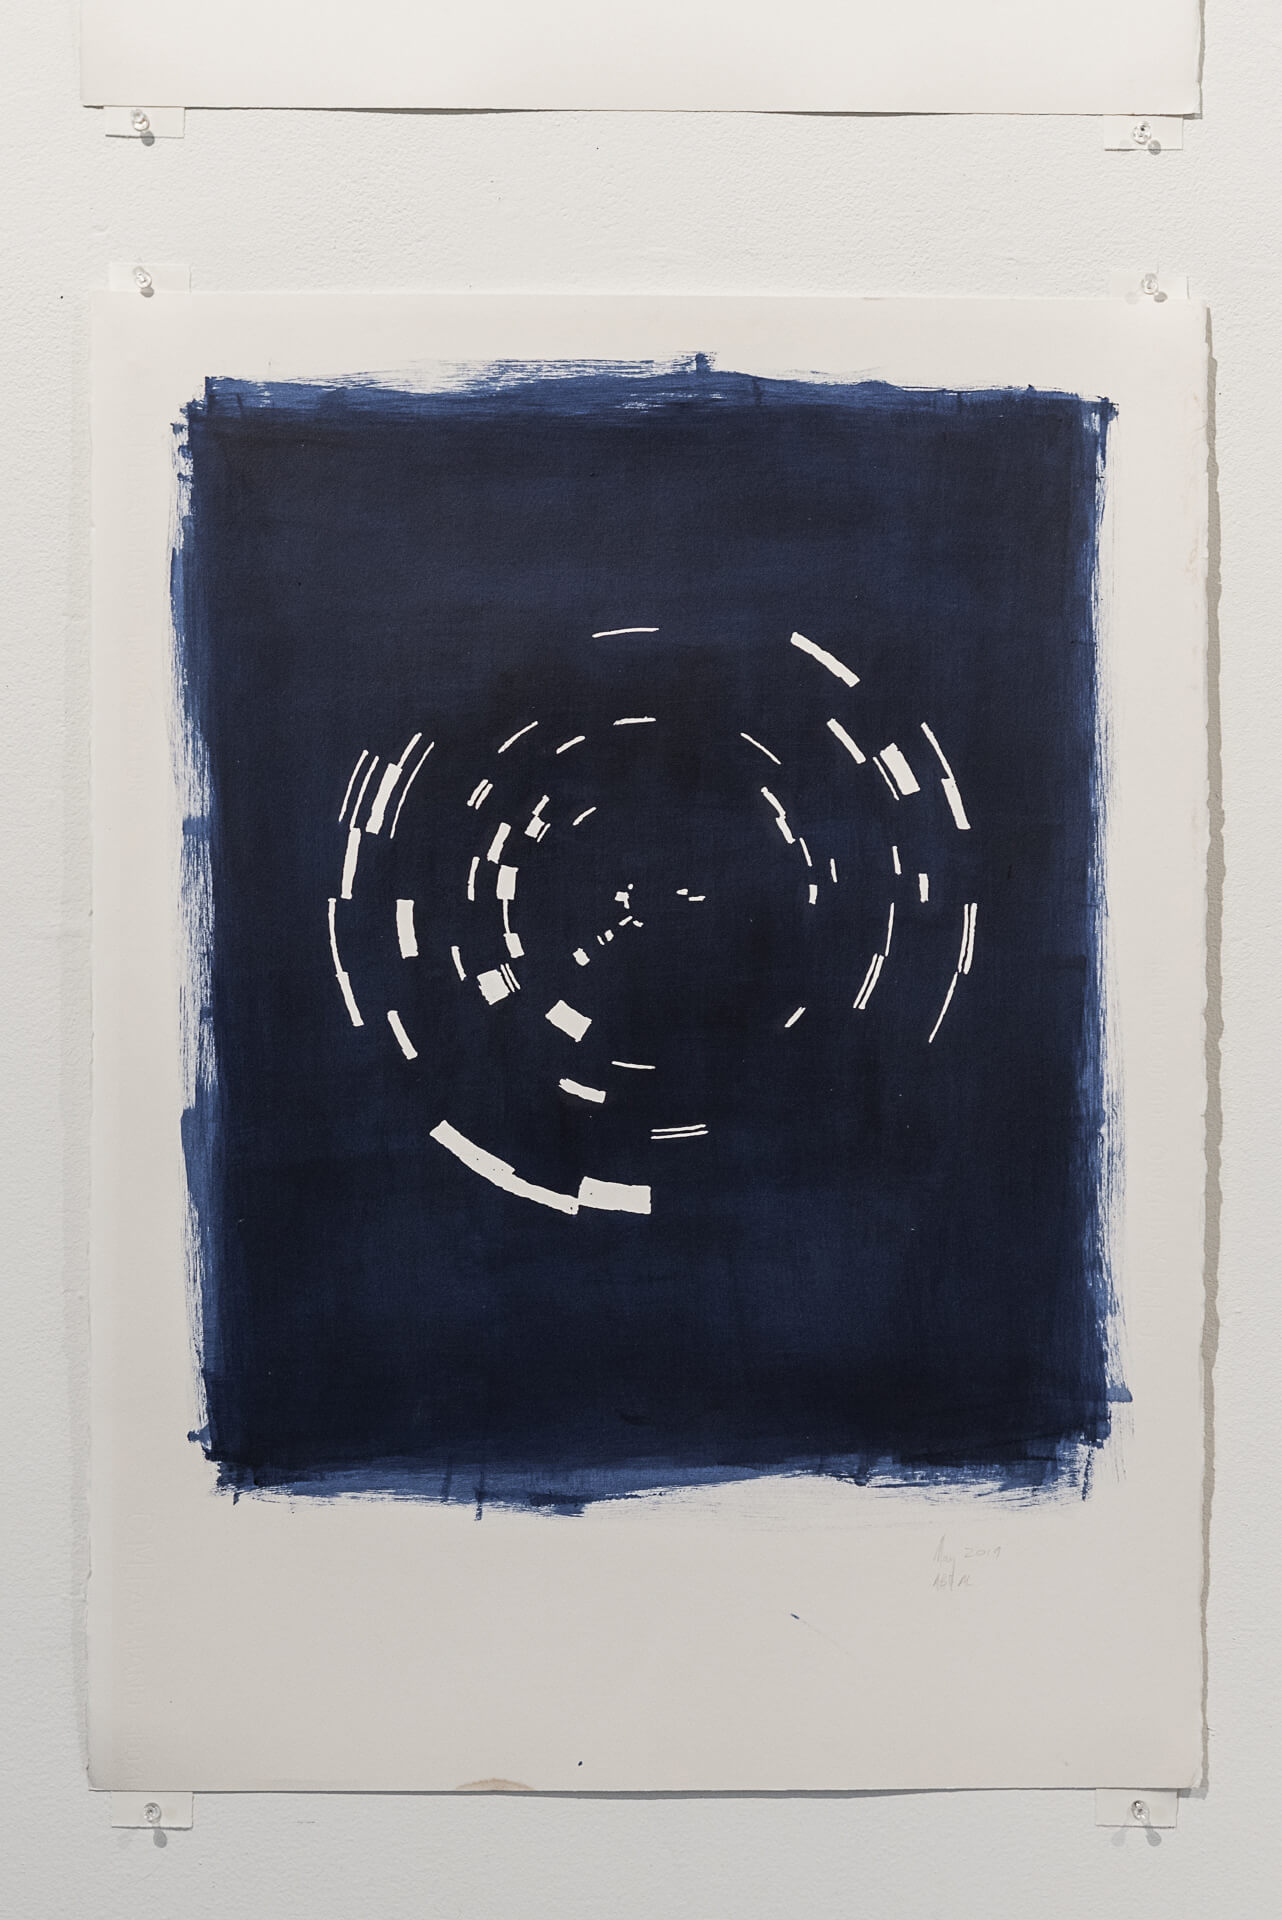 Indigo May 2019   Acrylic on paper, 30 x 22 inches